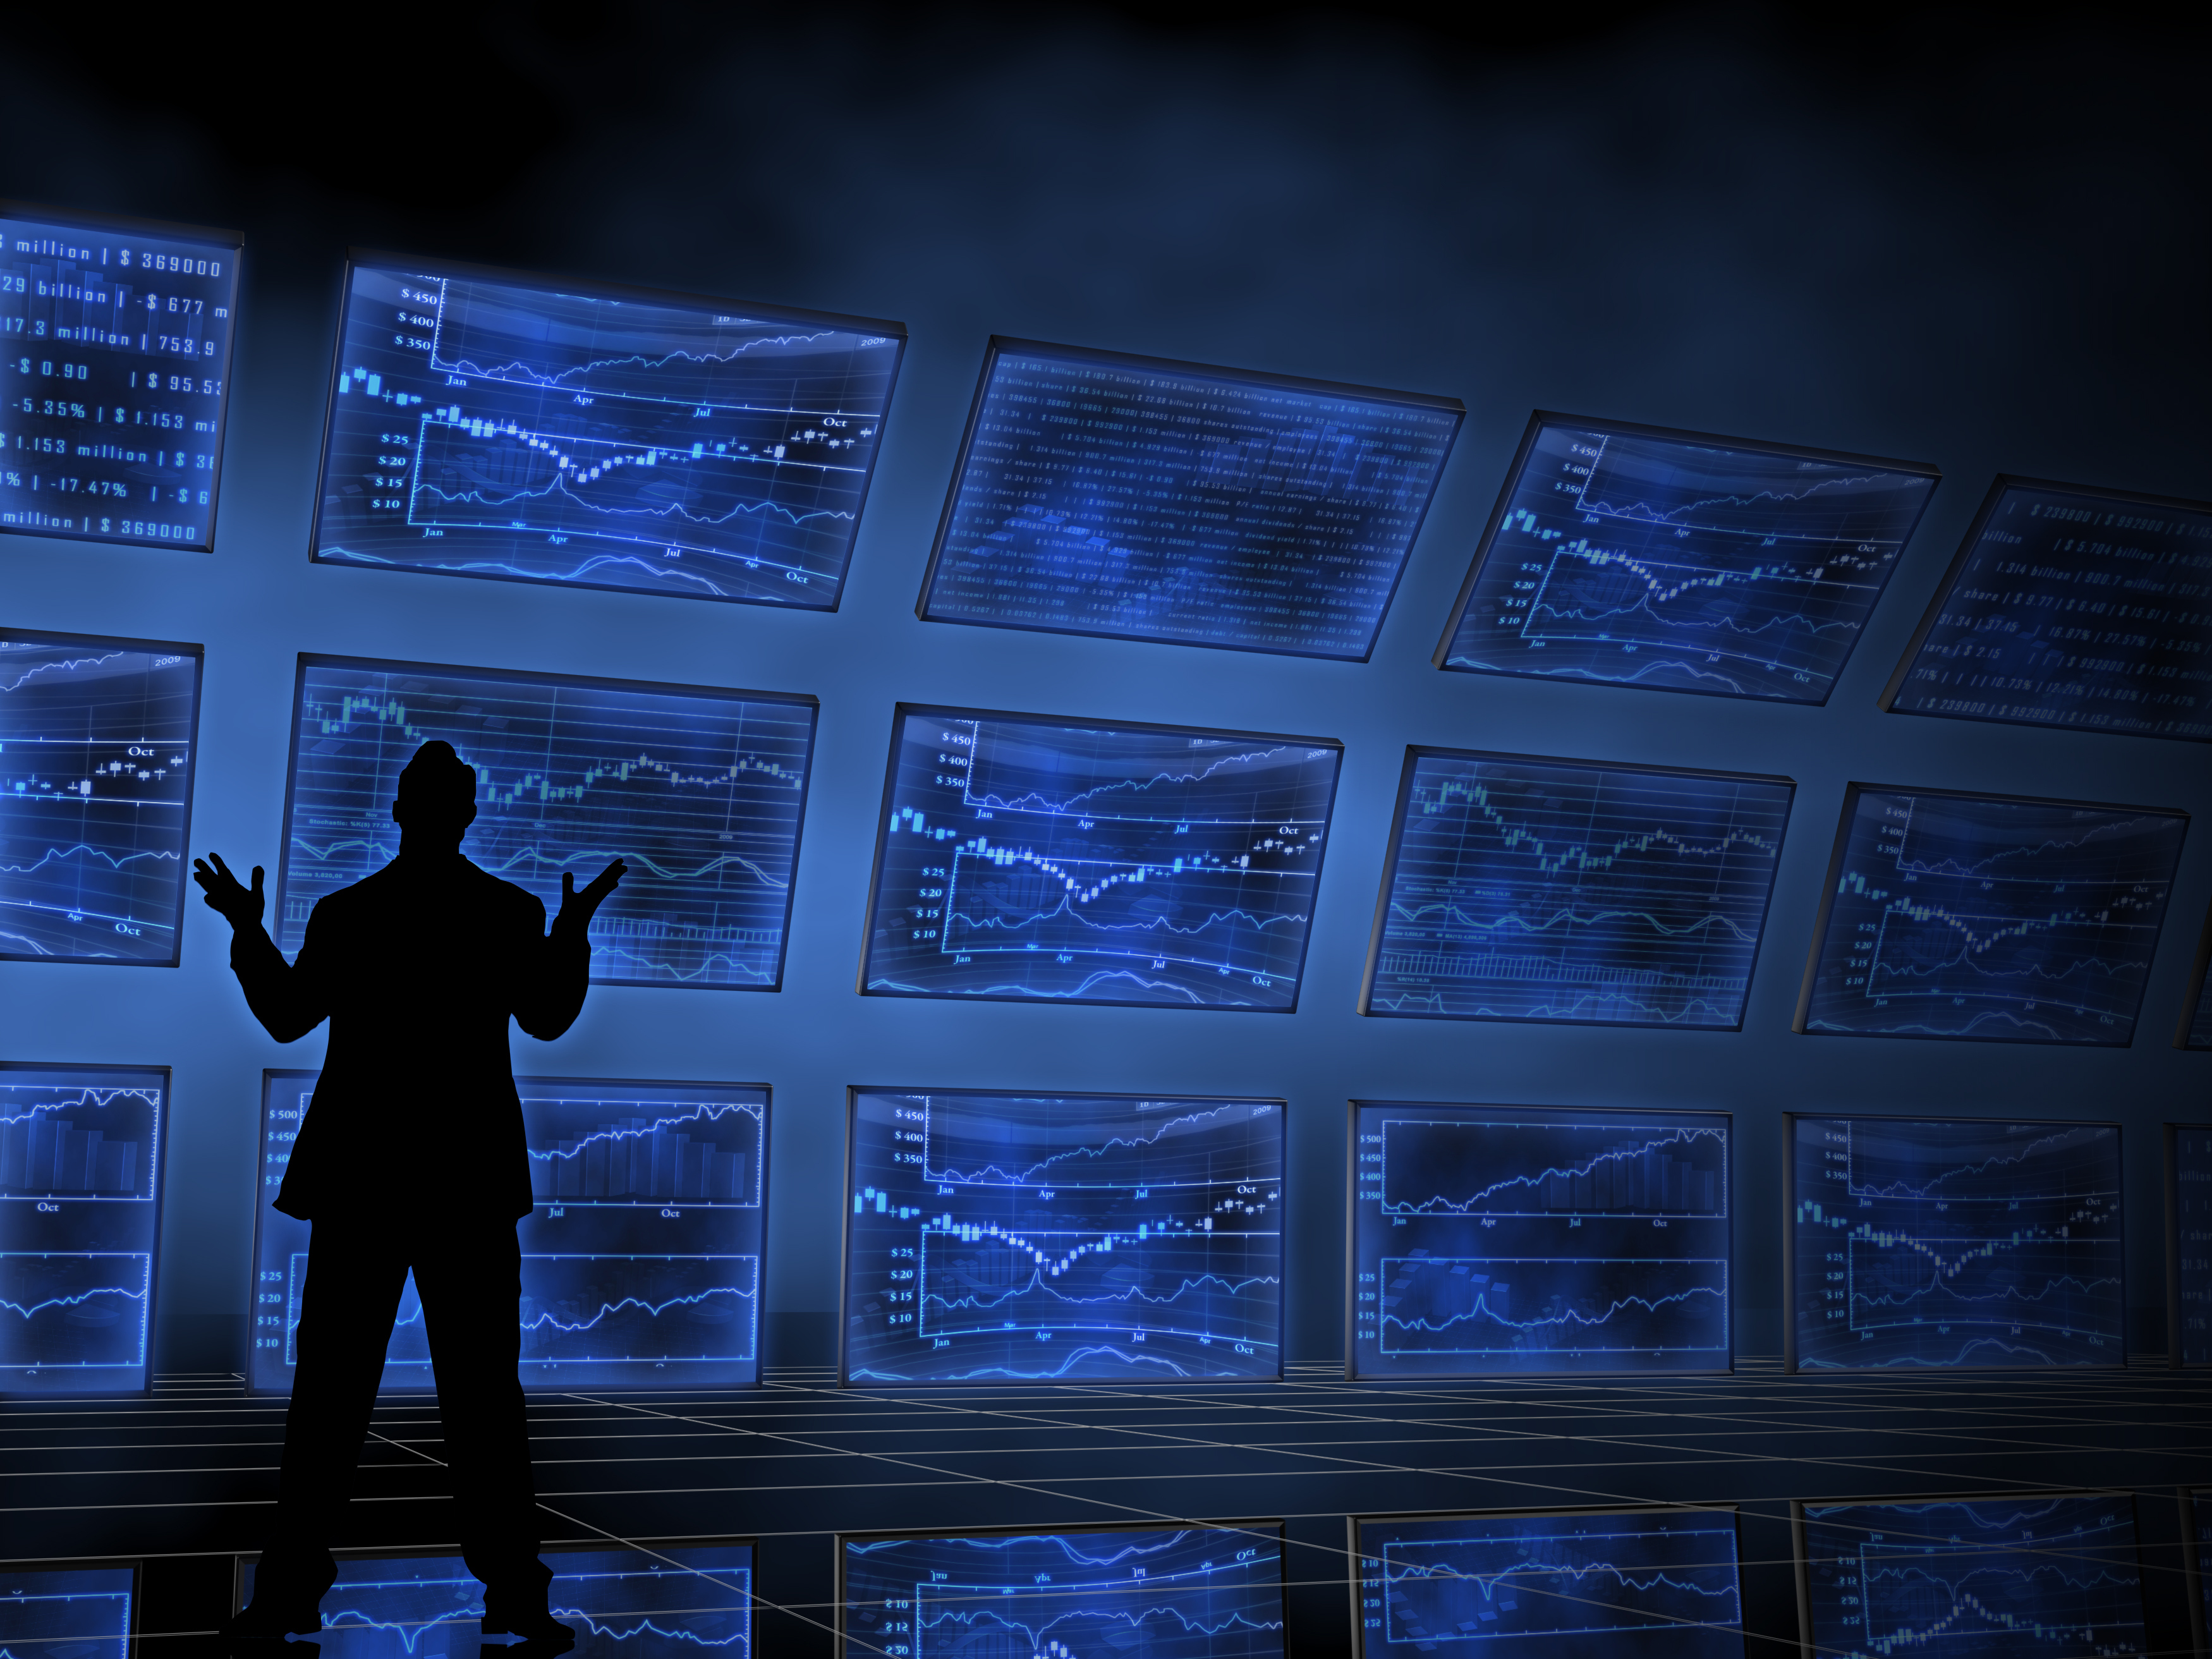 A person stands looking at rows of screens across a wall.